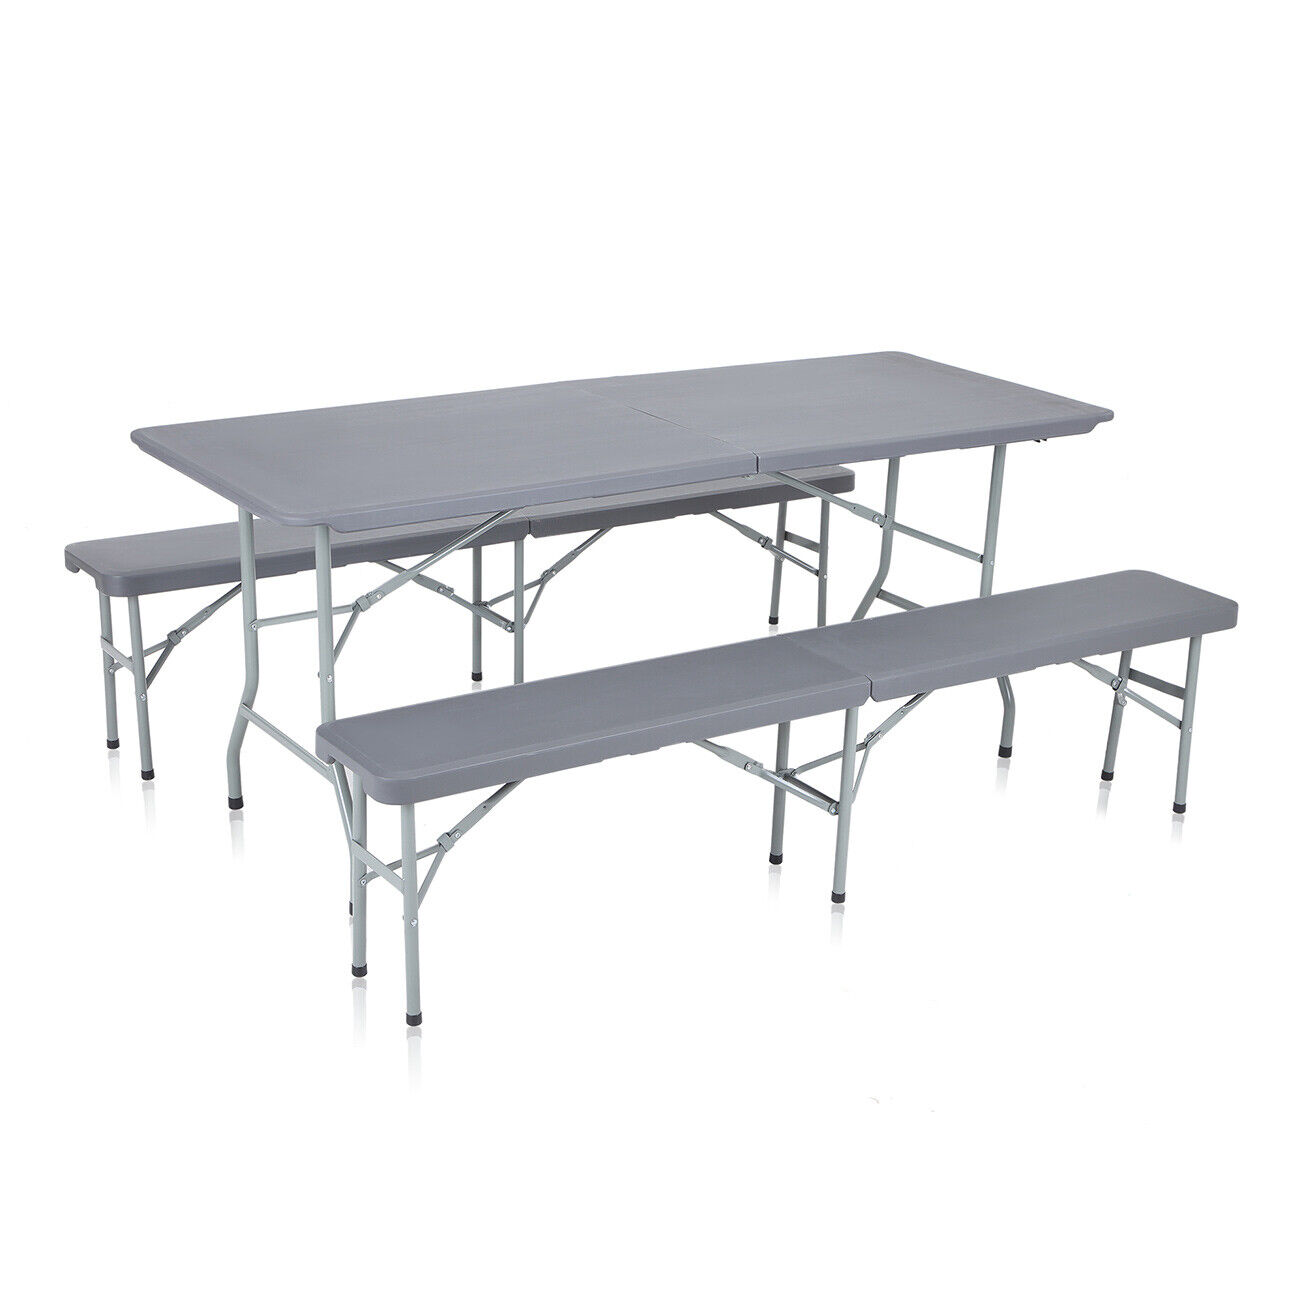 Camping Table and Bench Picnic Set Plastic Leightweight Foldable Furniture nouveau